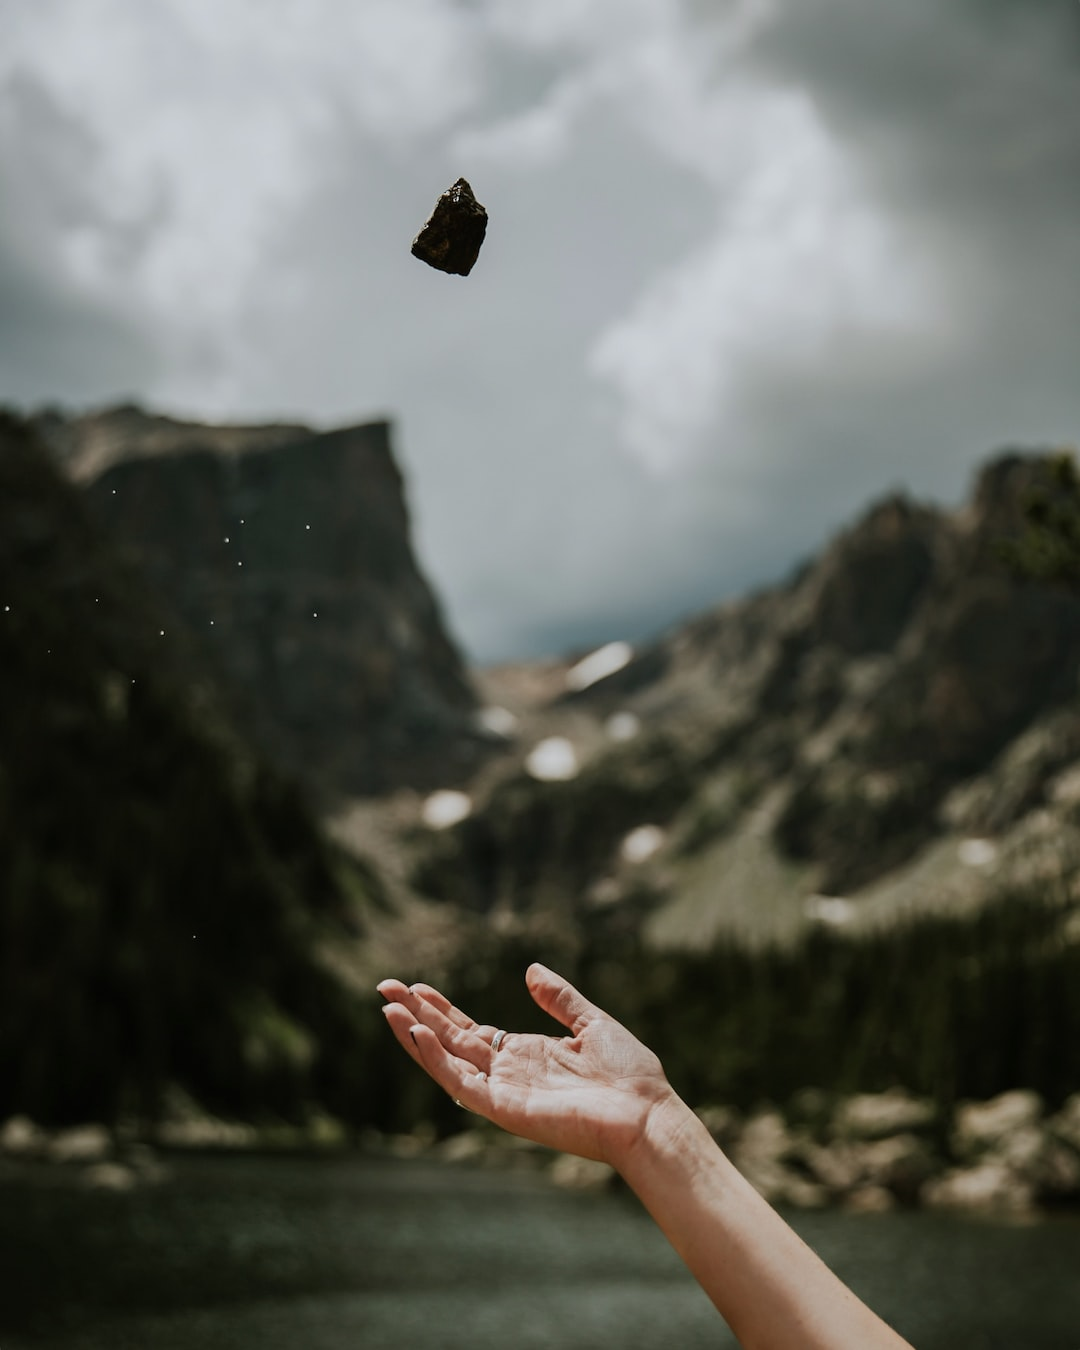 Hand Throwing Stone : Rock stone hand and throw hd photo by averie woodard